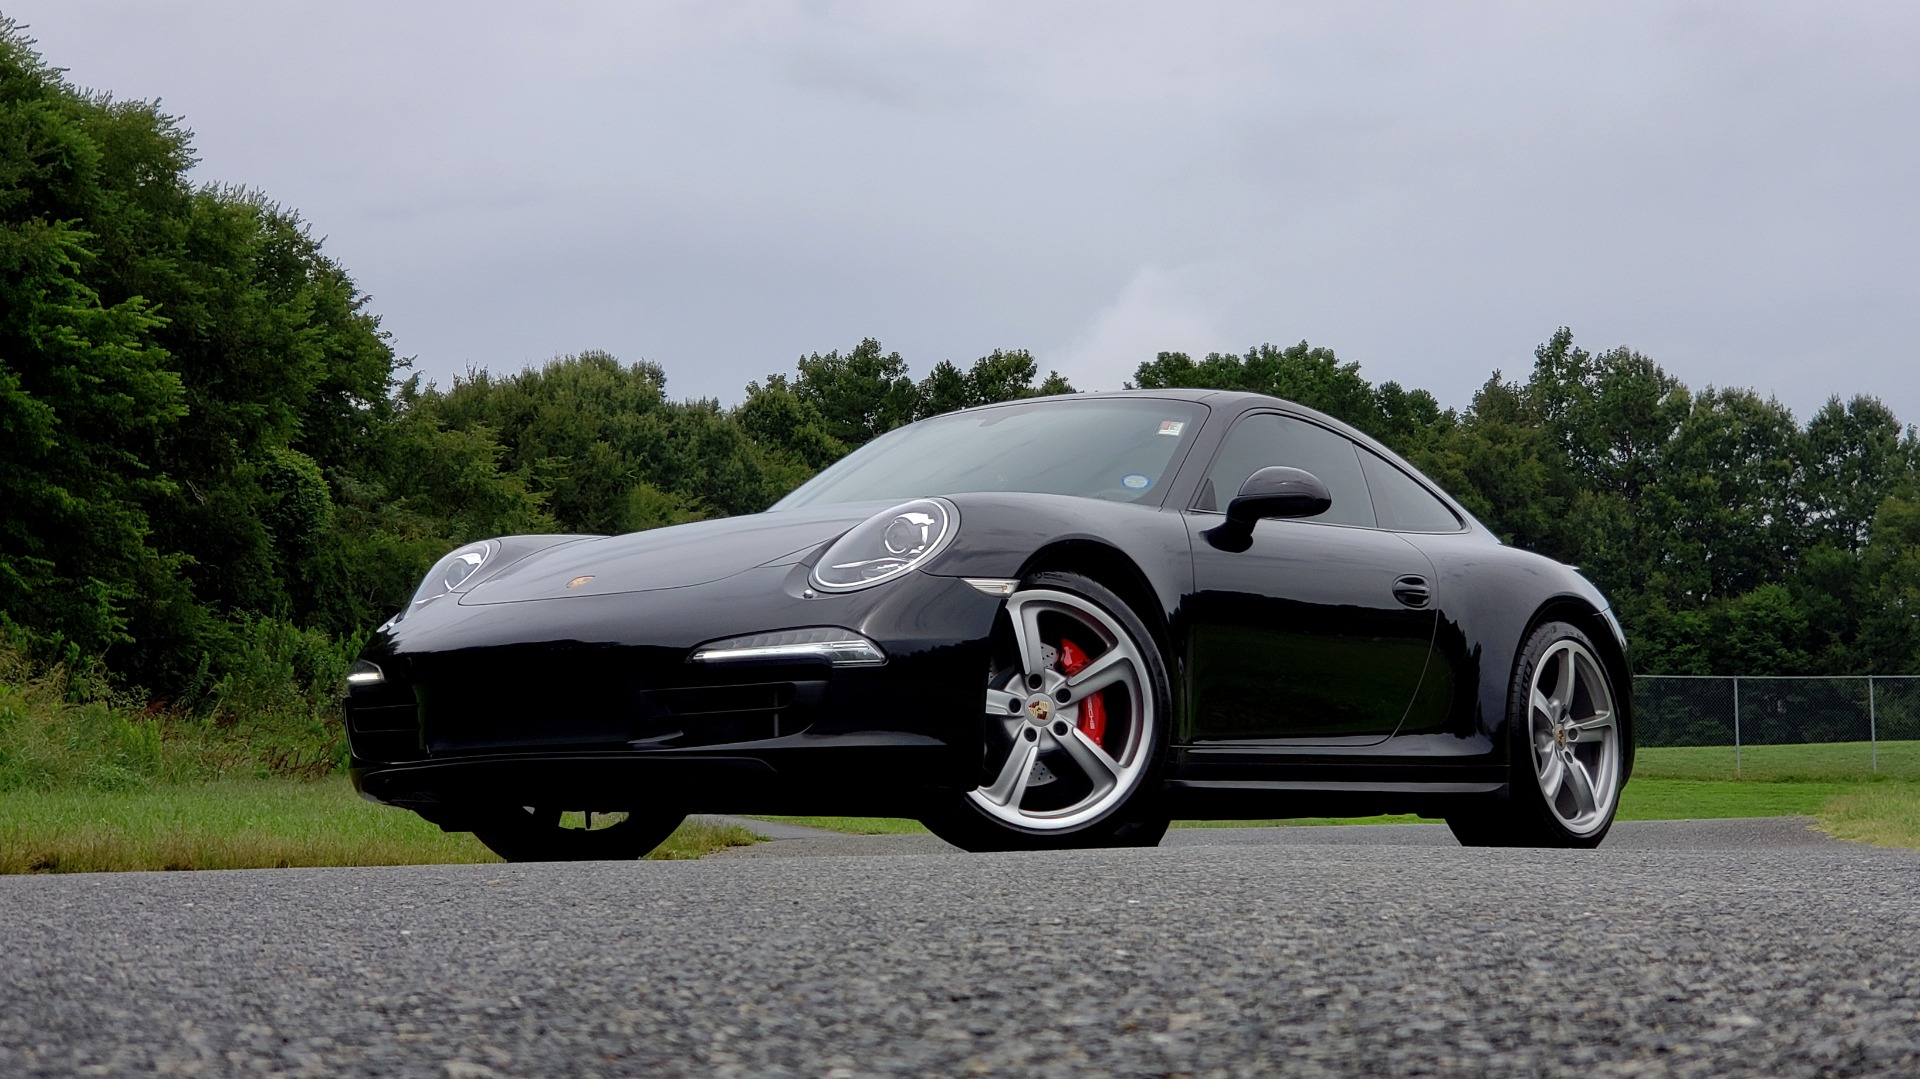 Used 2014 Porsche 911 CARRERA 4S / AWD / 3.8L / PDK / CHRONO / NAV / BOSE / SUNROOF for sale Sold at Formula Imports in Charlotte NC 28227 2